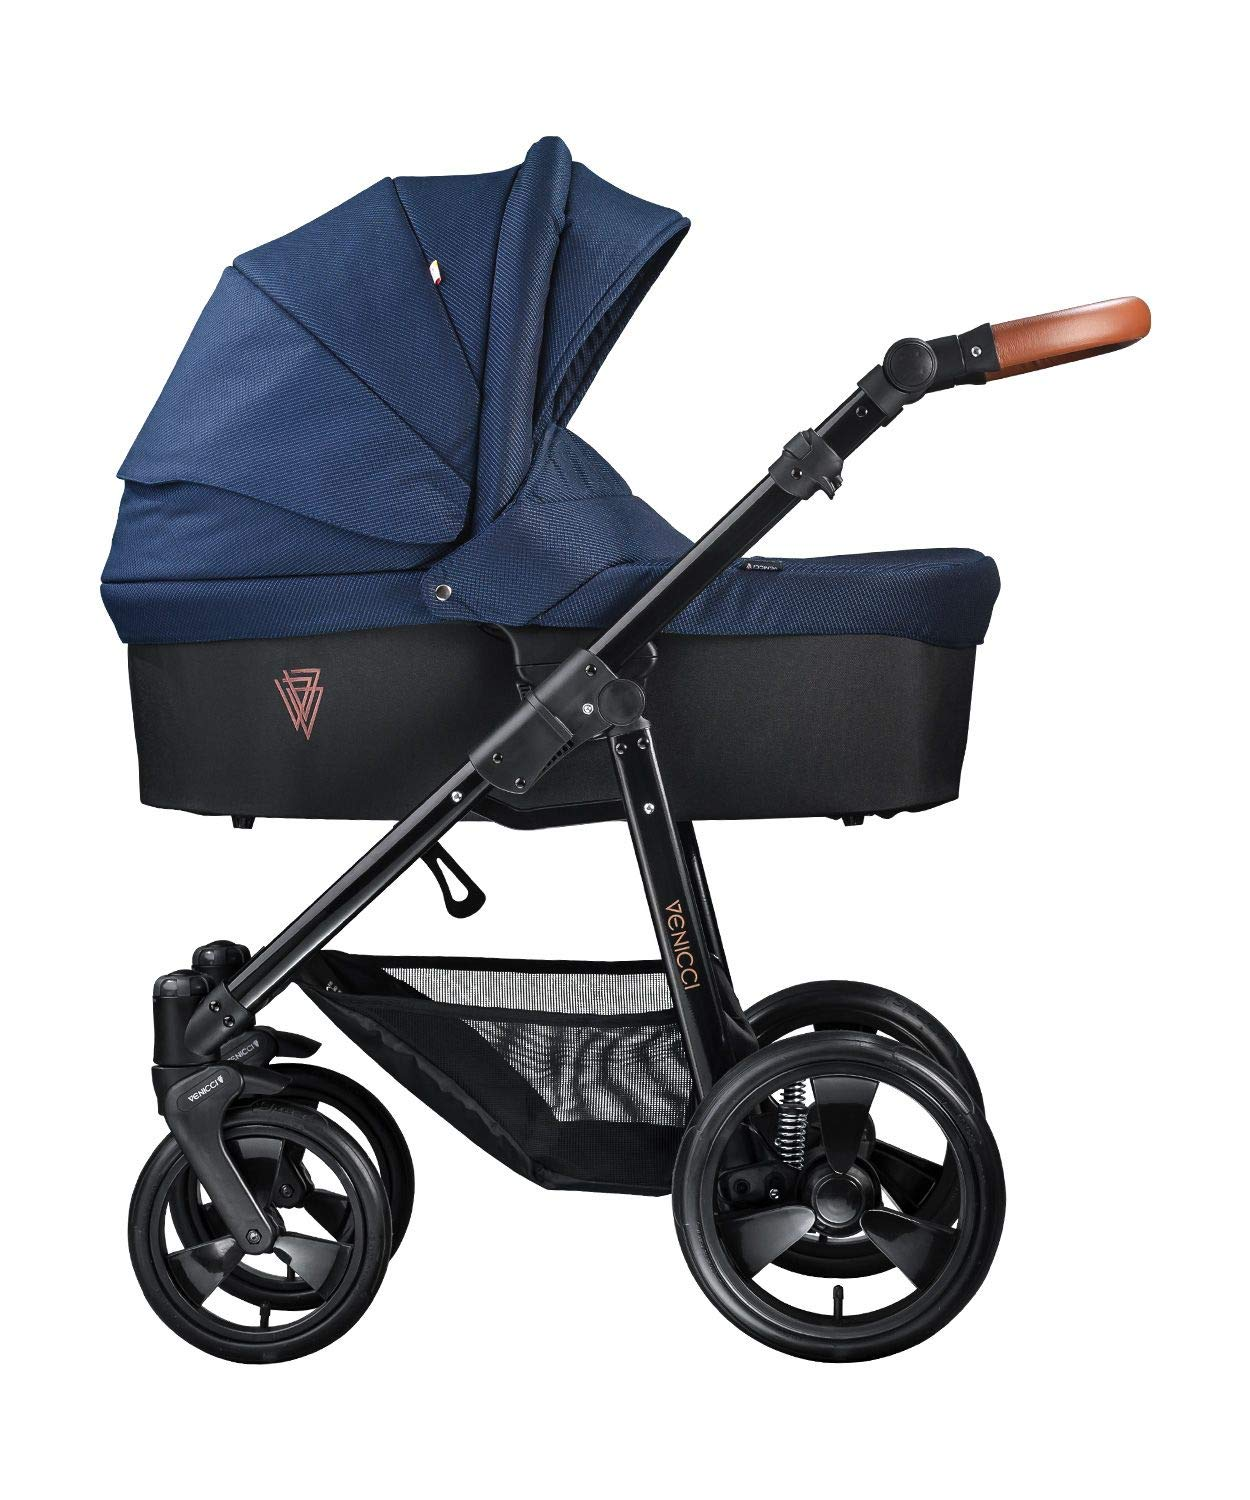 Venicci Gusto 3-in-1 Travel System - Navy - with Carrycot + Car Seat + Changing Bag + Footmuff + Raincover + Mosquito Net + 5-Point Harness and UV 50+ Fabric + Car Seat Adapters + Cup Holder  3 in 1 Travel System with included Group 0+ Car Seat Suitable for your baby from birth onwards 5-point harness to enhance the safety of your child 2